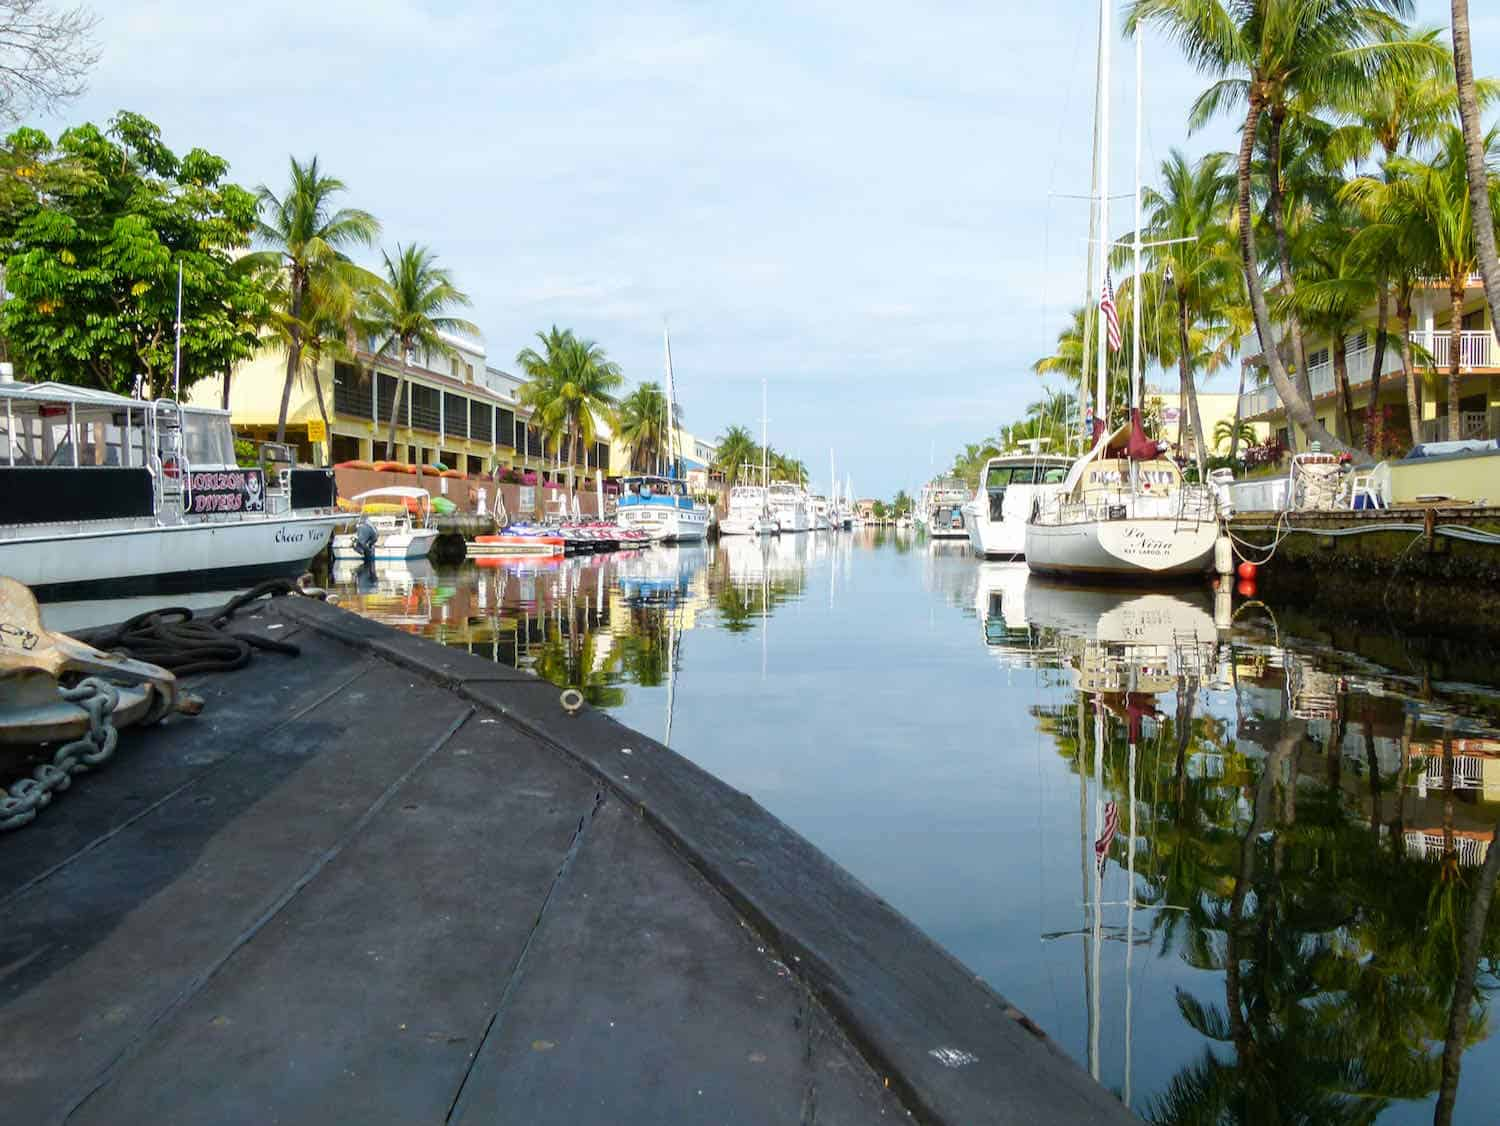 boat travels down a canal in Key Largo, Florida